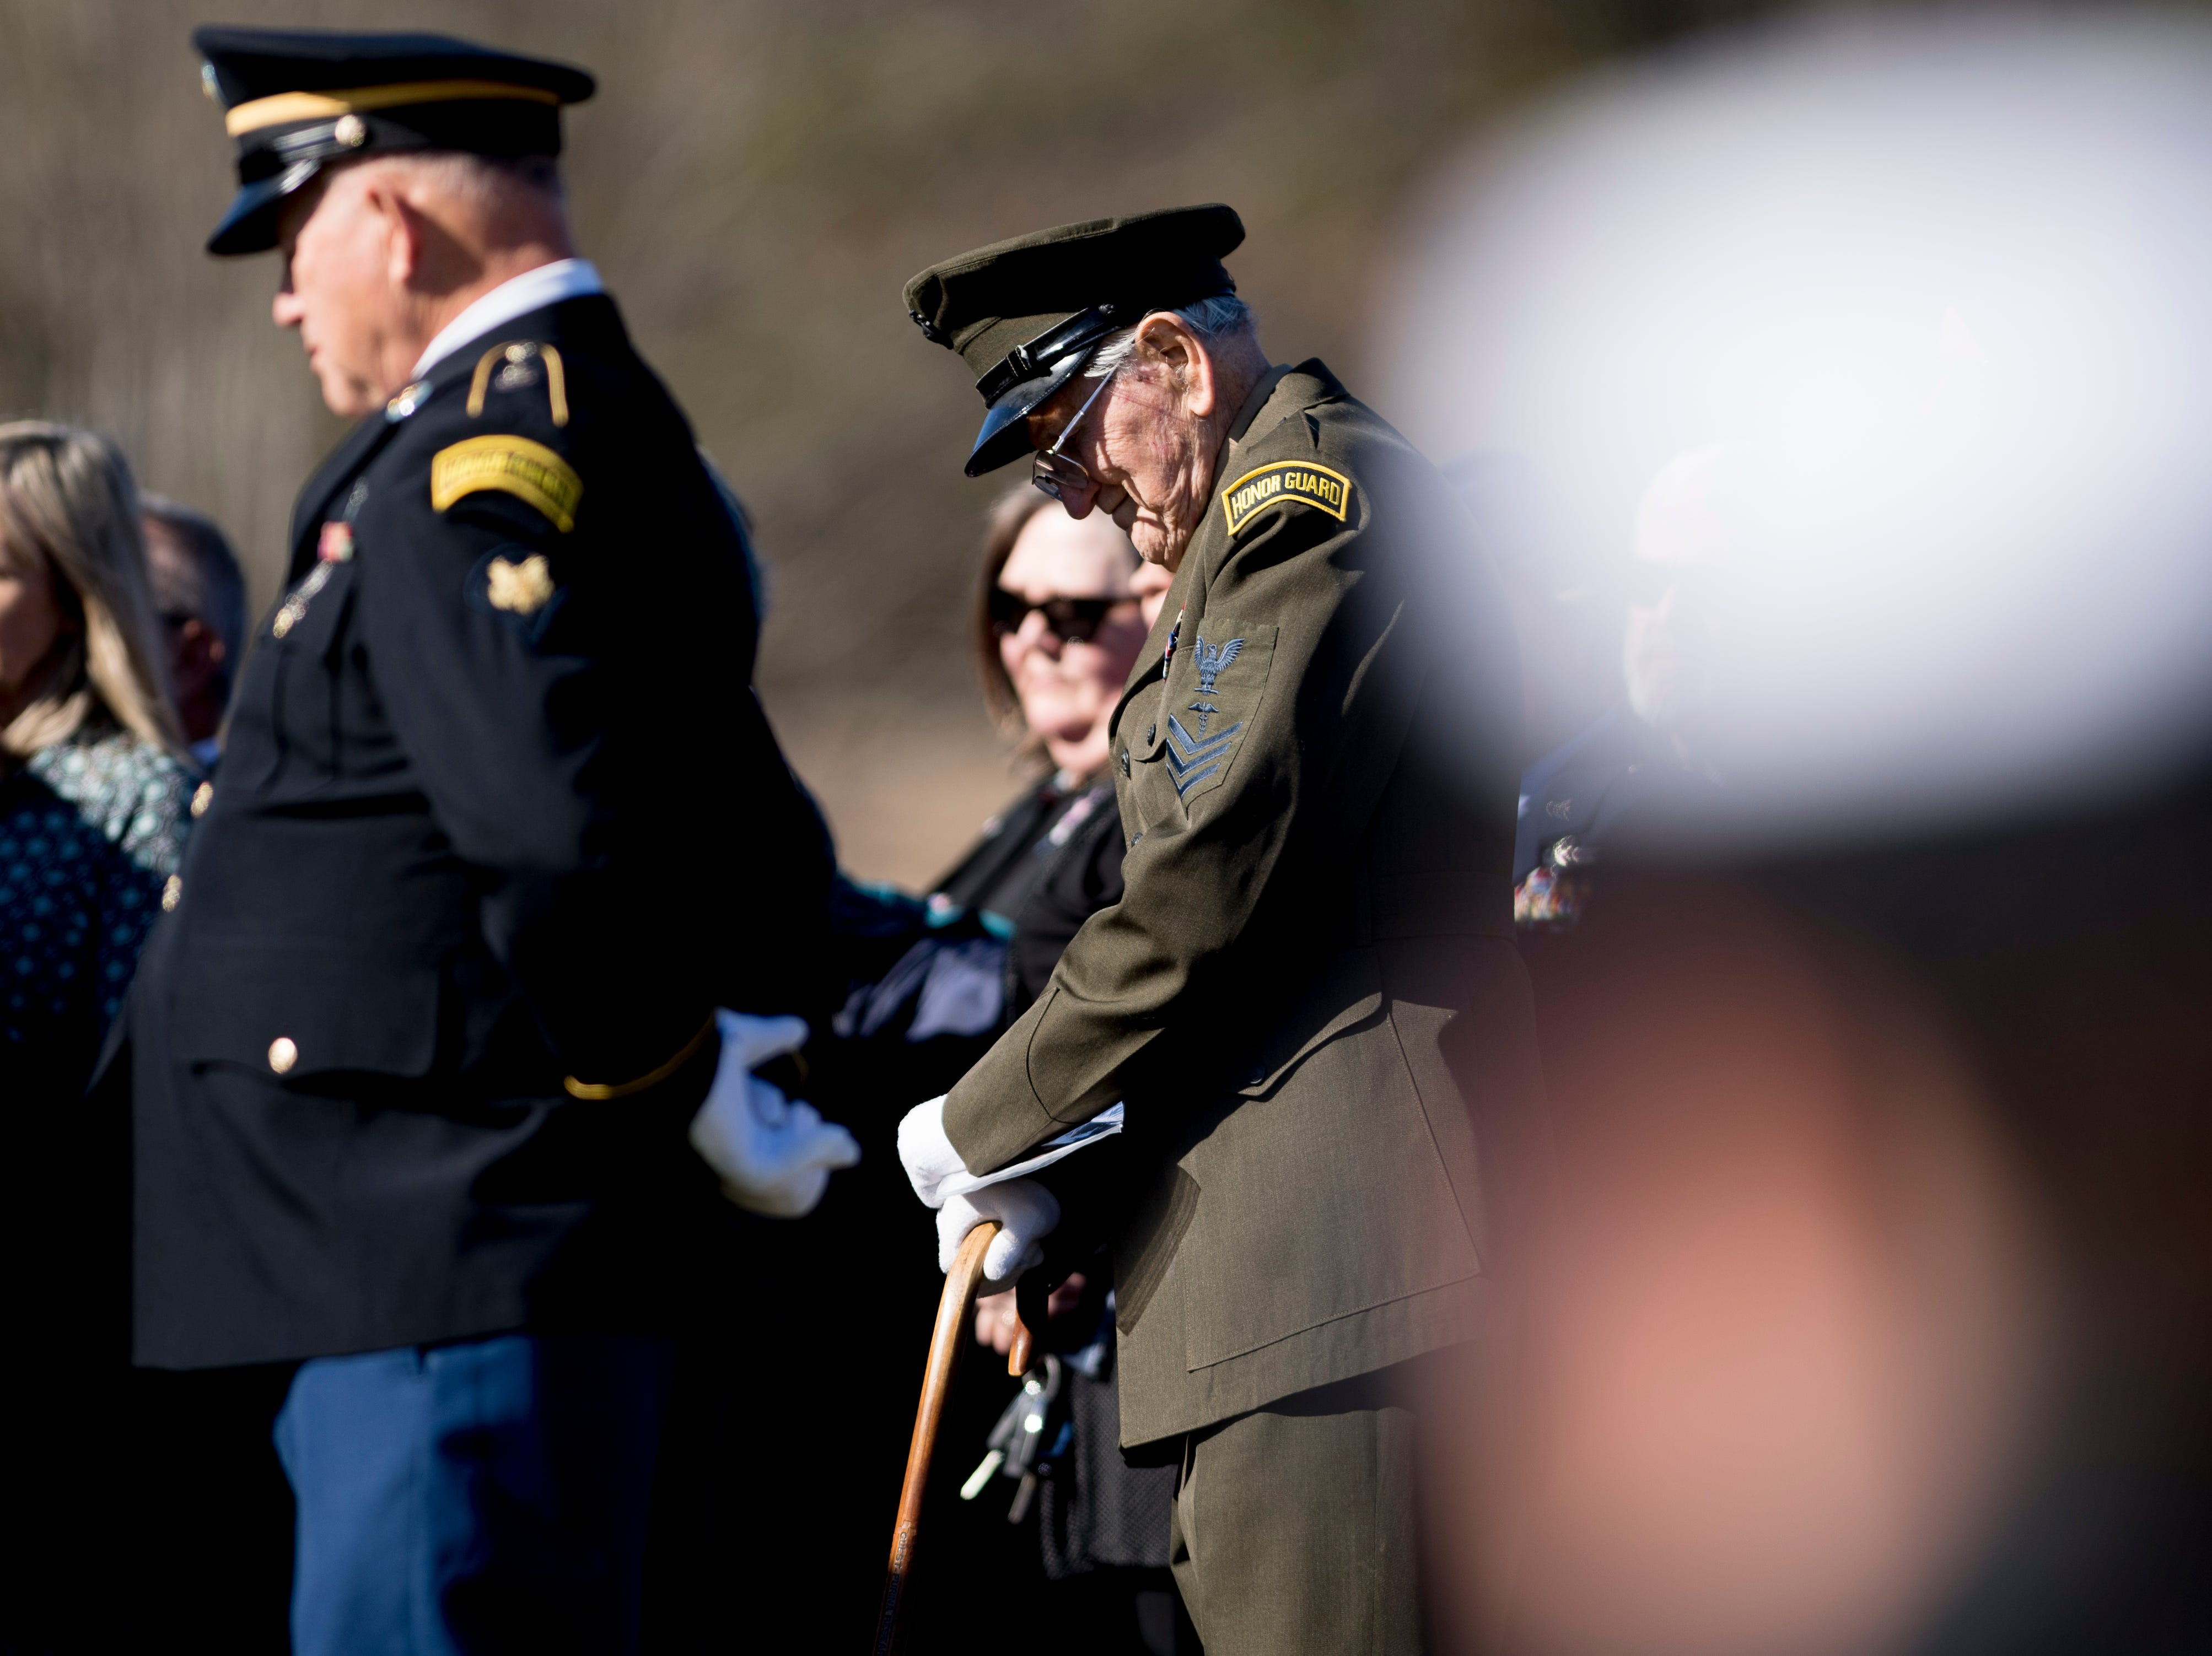 An honor guard member bows their head in prayer during a graveside service for Rosemary Mariner, the US Navy's first female fighter pilot, at New Loyston Cemetery in Maynardville, Tennessee on Saturday, February 2, 2019. Mariner died January 24th of cancer.